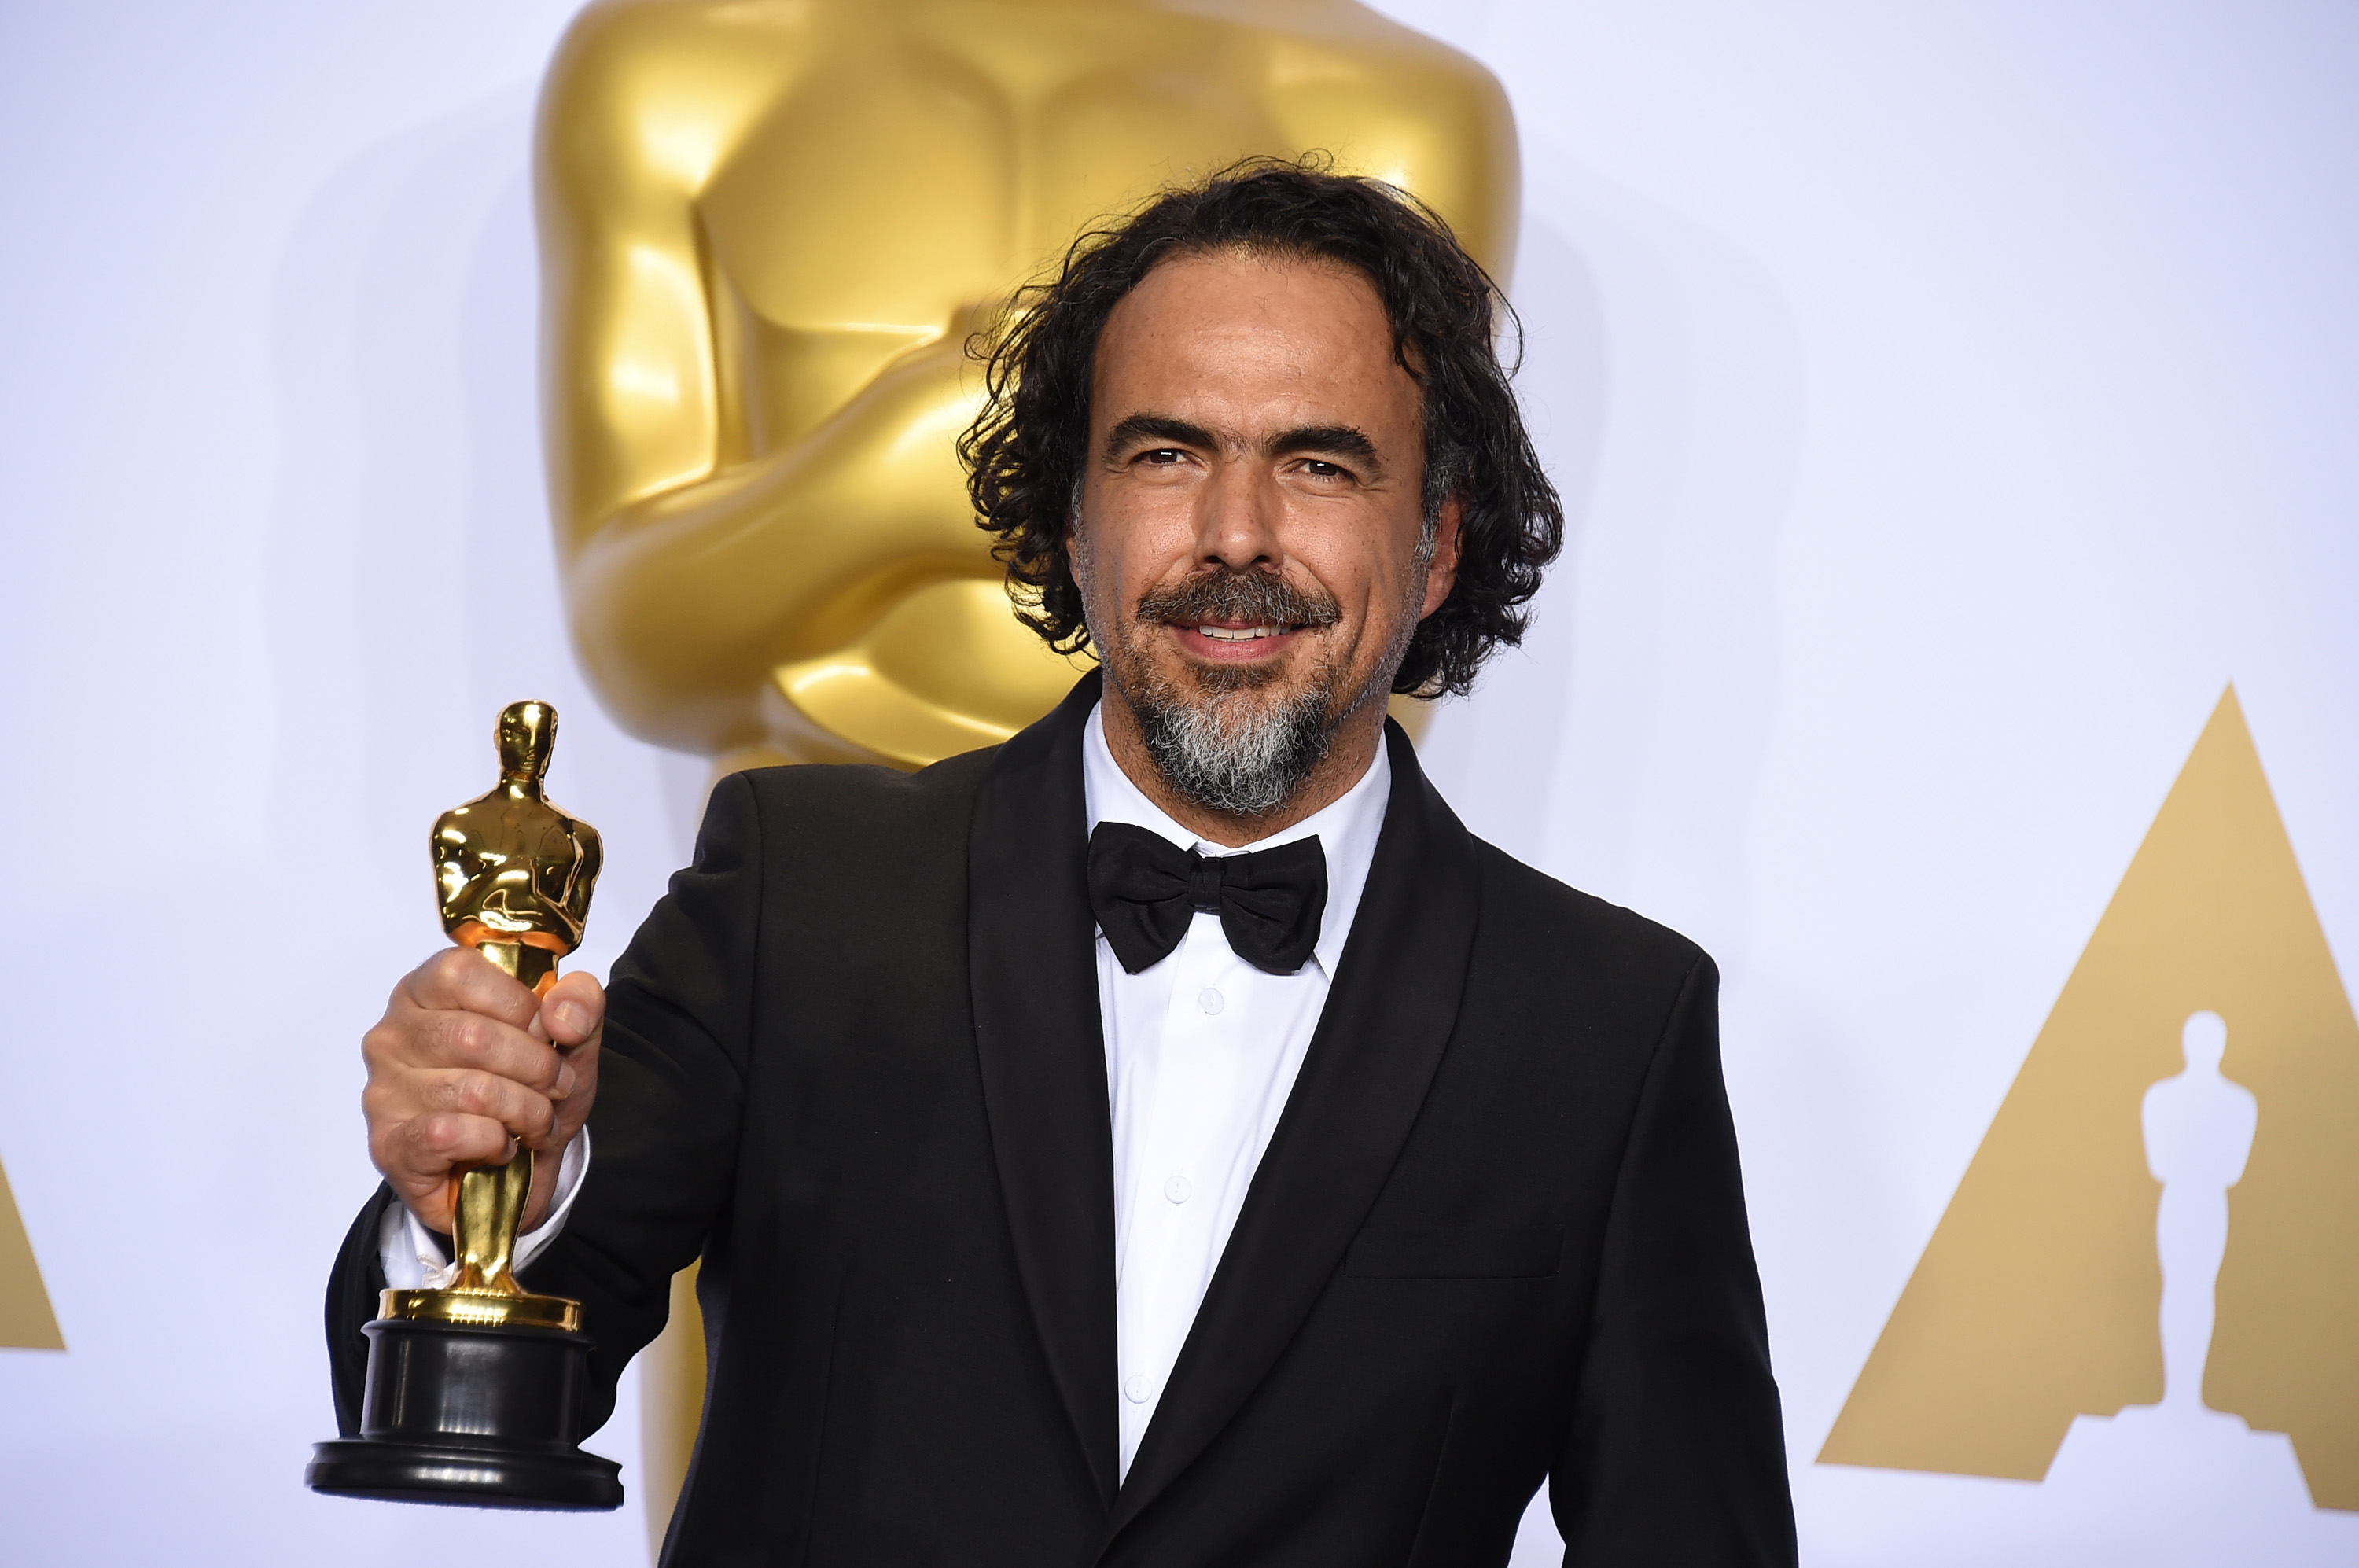 """Alejandro G. Inarritu poses in the press room with the award for best director for """"The Revenant"""" at the Oscars on Feb. 28, 2016, at the Dolby Theatre in Los Angeles."""